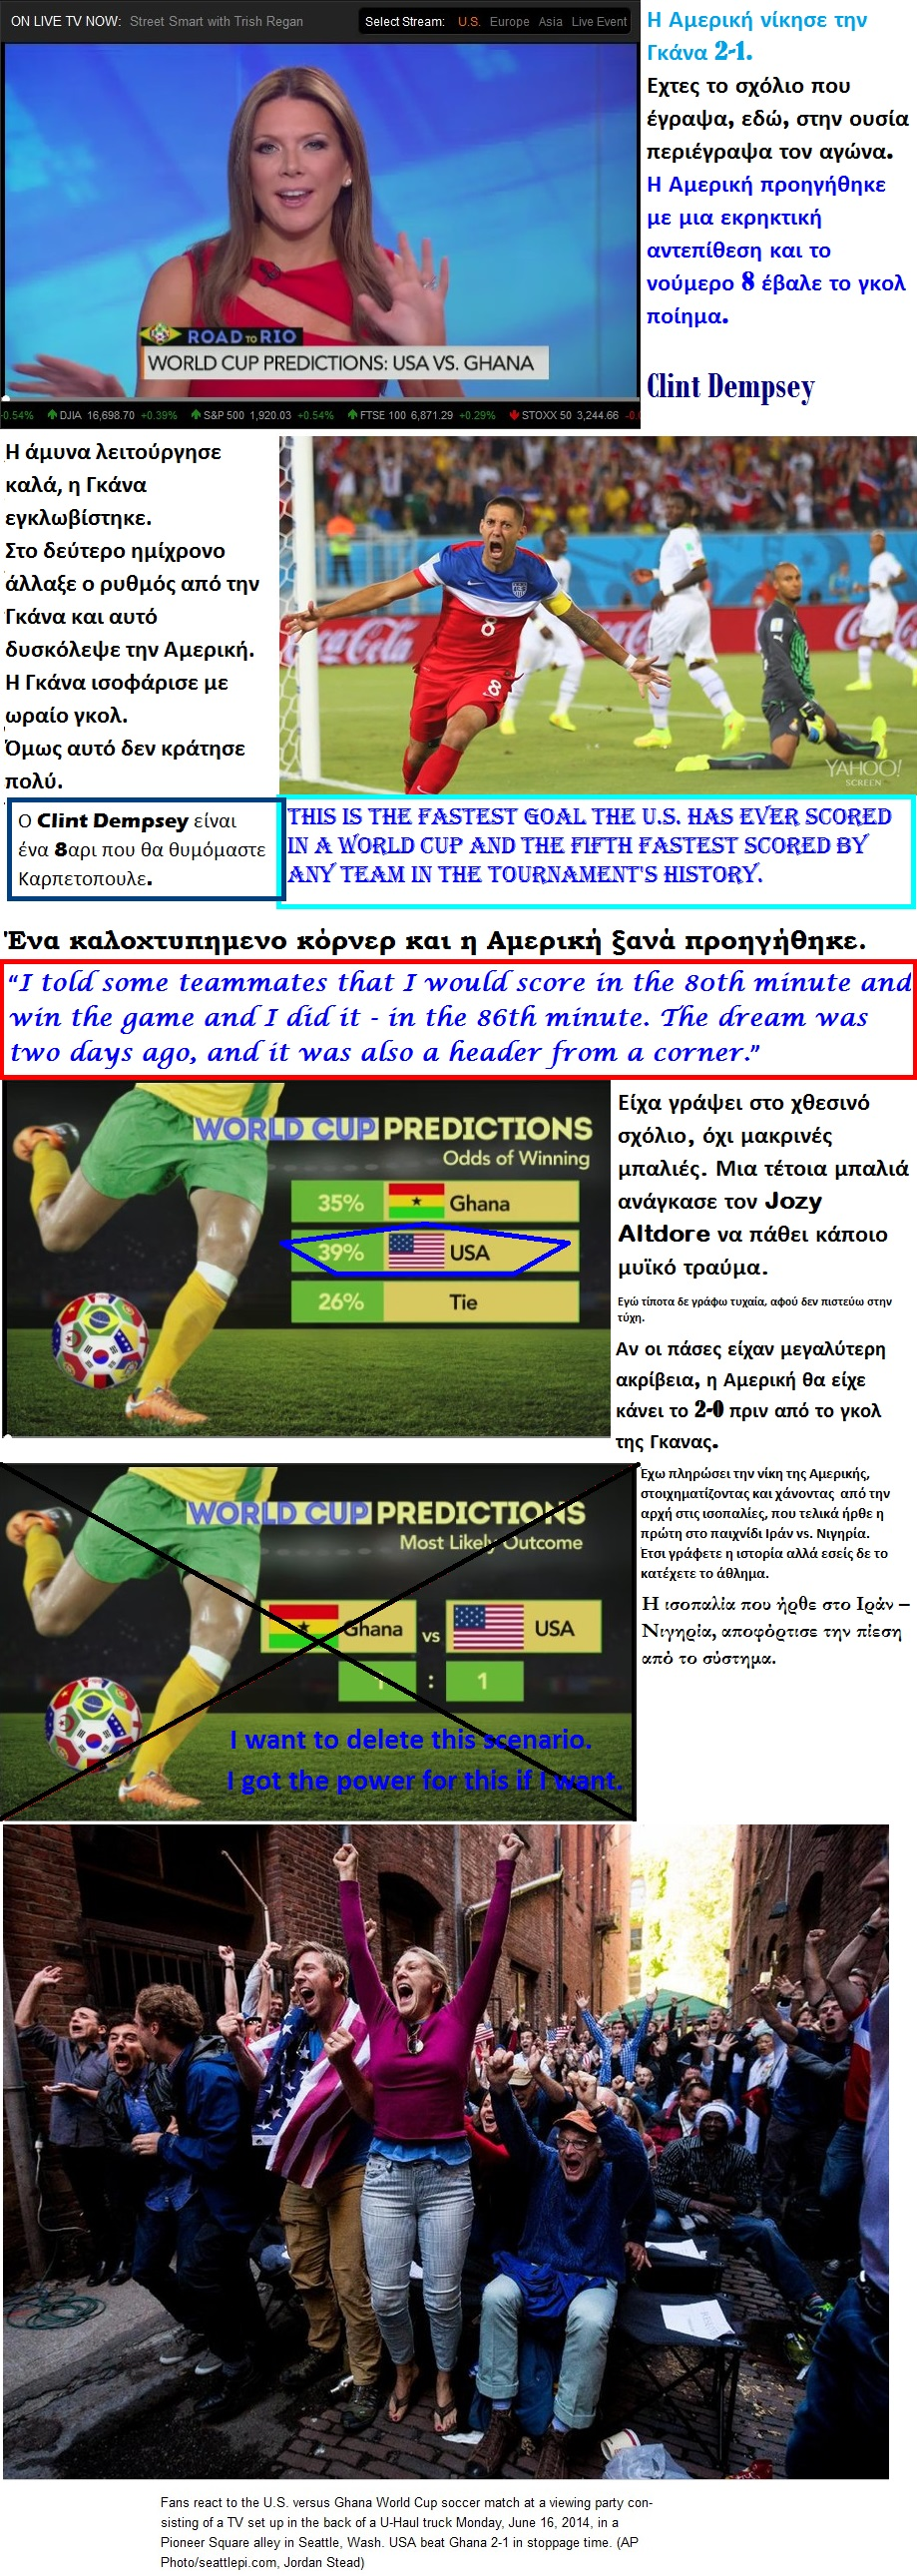 BLOOMBERG MUDIAL GHANA 1 VS 2 USA 02 170614